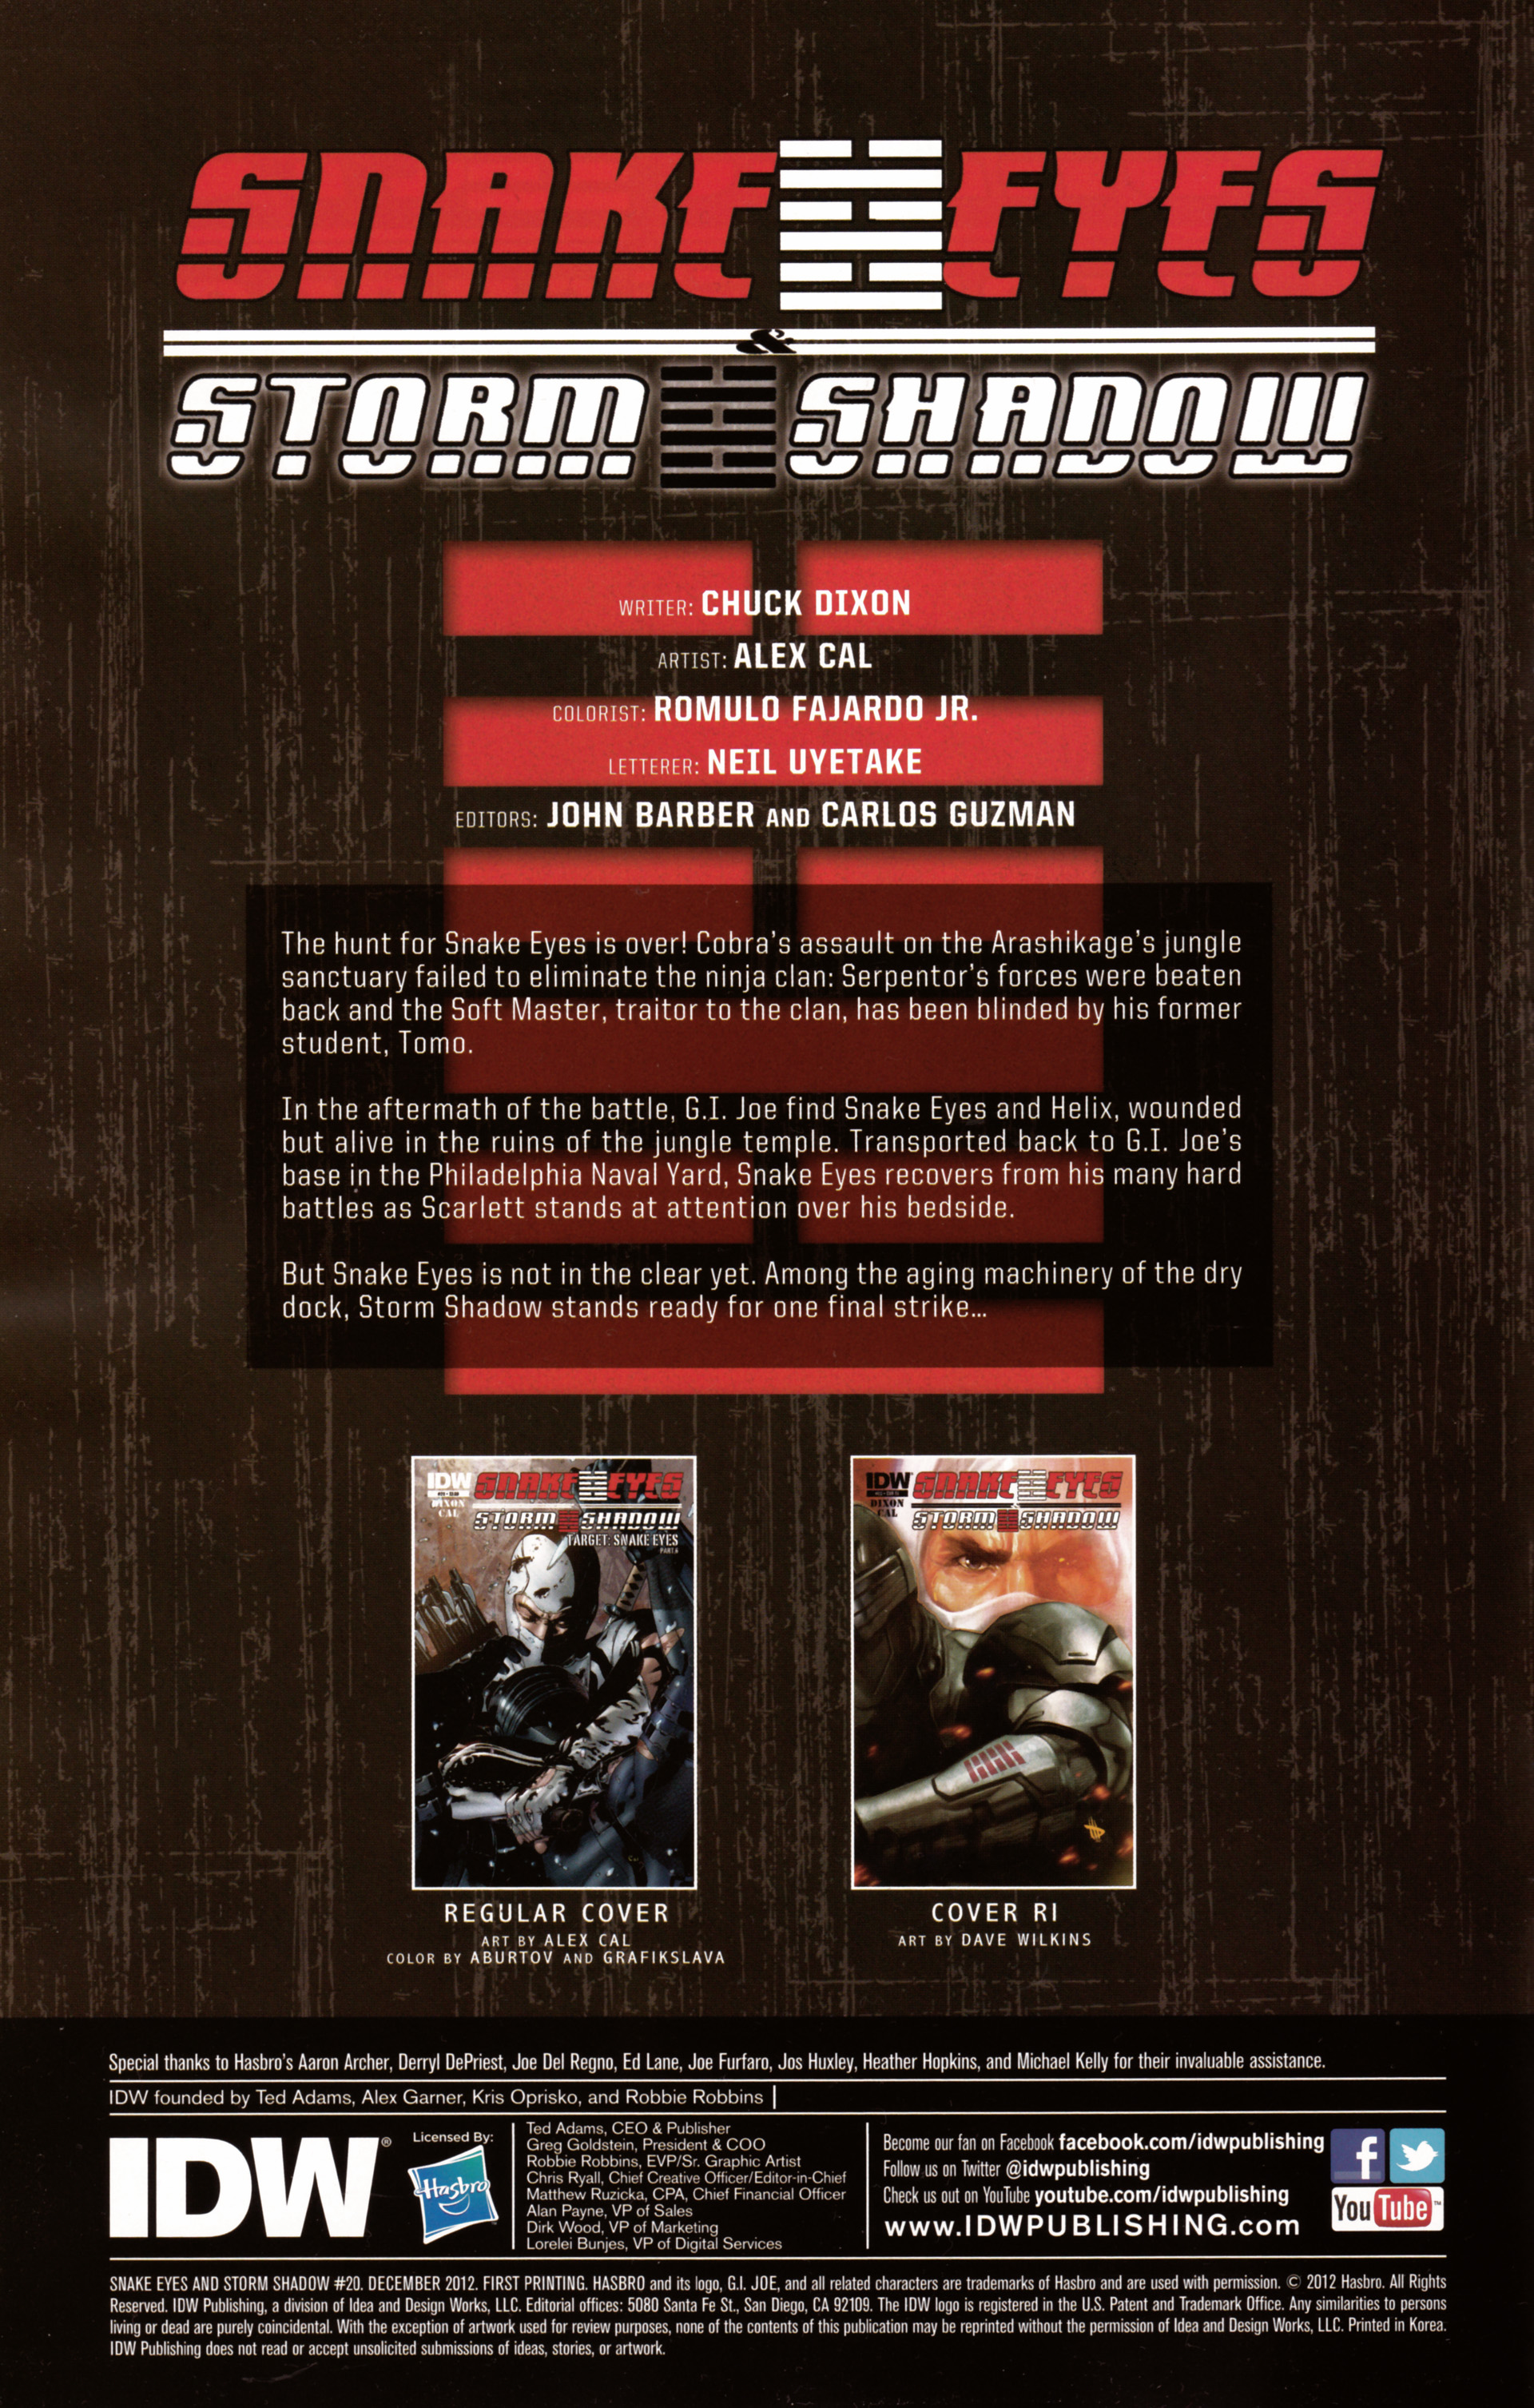 Read online Snake Eyes and Storm Shadow comic -  Issue #20 - 2